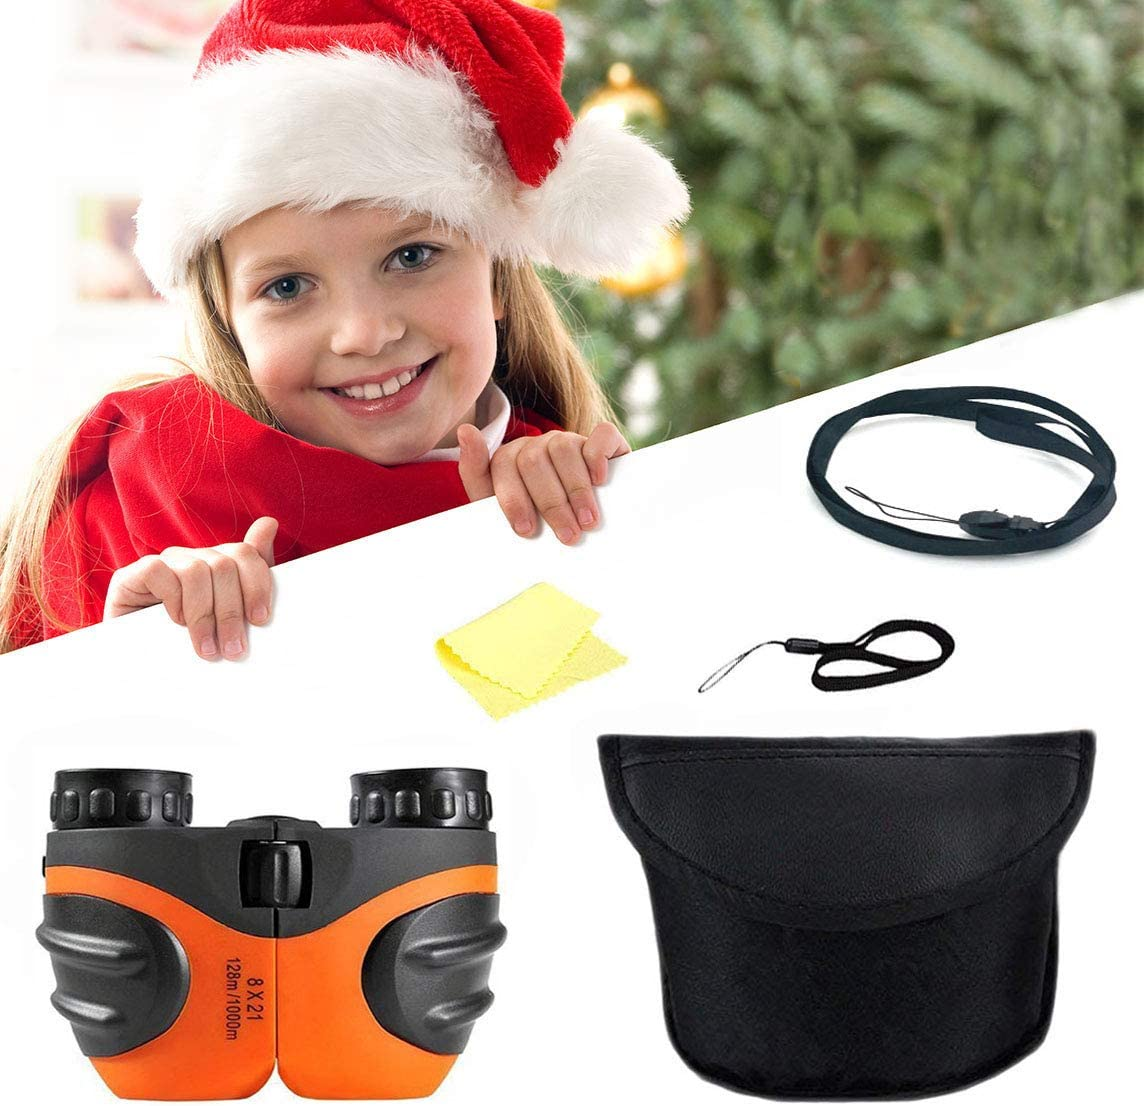 Best Toys for 4-9 Year Old Boys Orange Spring/&Toys Binoculars for Kids,8x21 Compact Telescope Boys Gifts 10 Years Old to Wildife and Theater,Gifts for Girl 8 Year Old